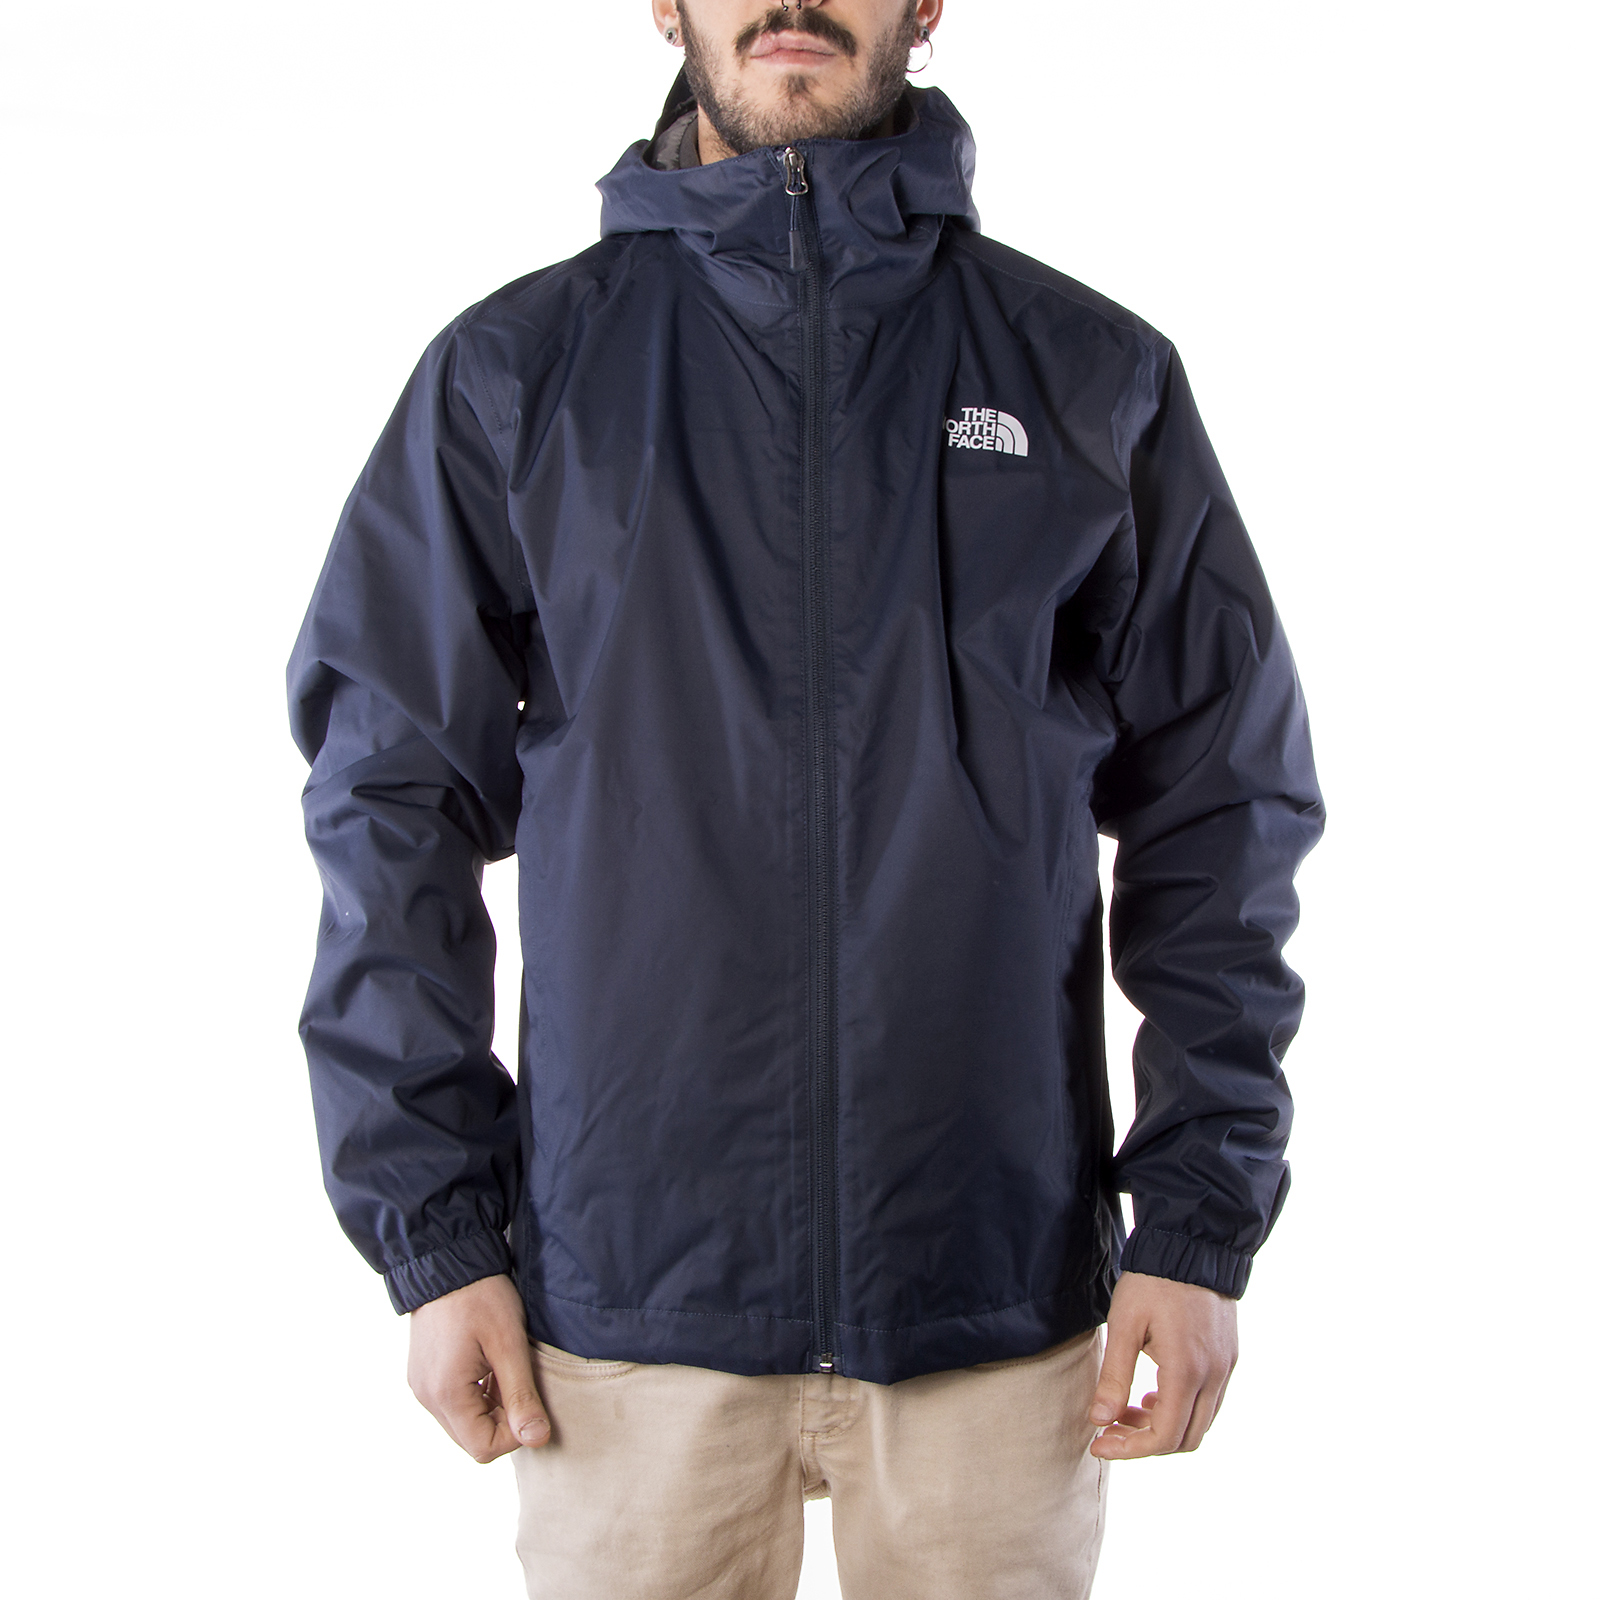 THE NORTH FACE JACKET M QUEST JACKET URBAN NAVY blue  6cbb20080f91